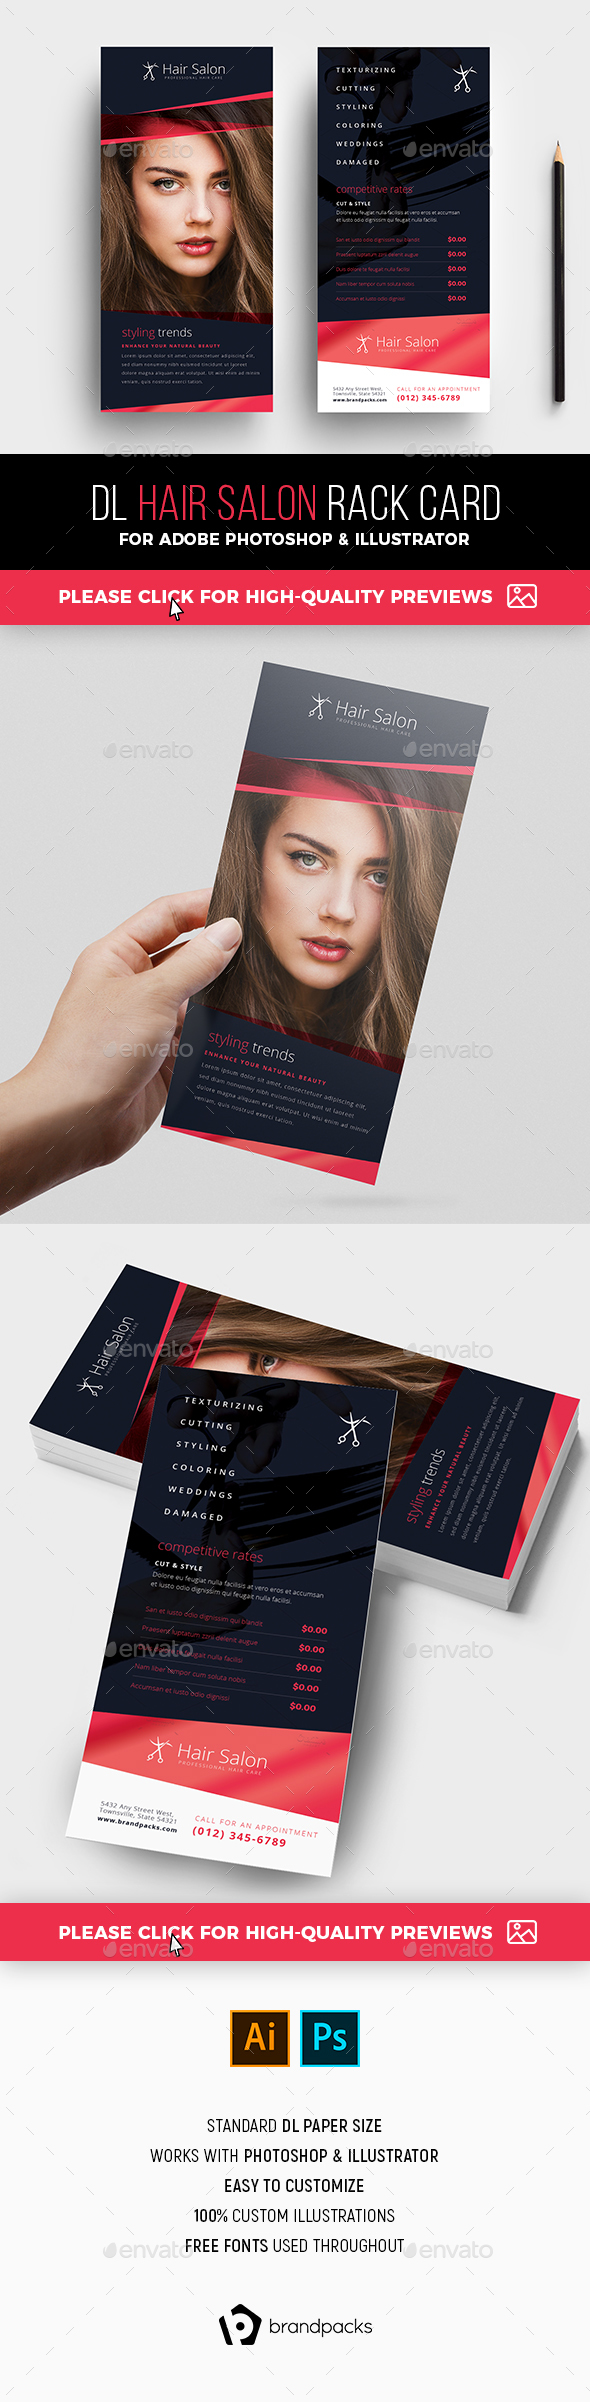 Hair Salon Rack Card Template - Commerce Flyers